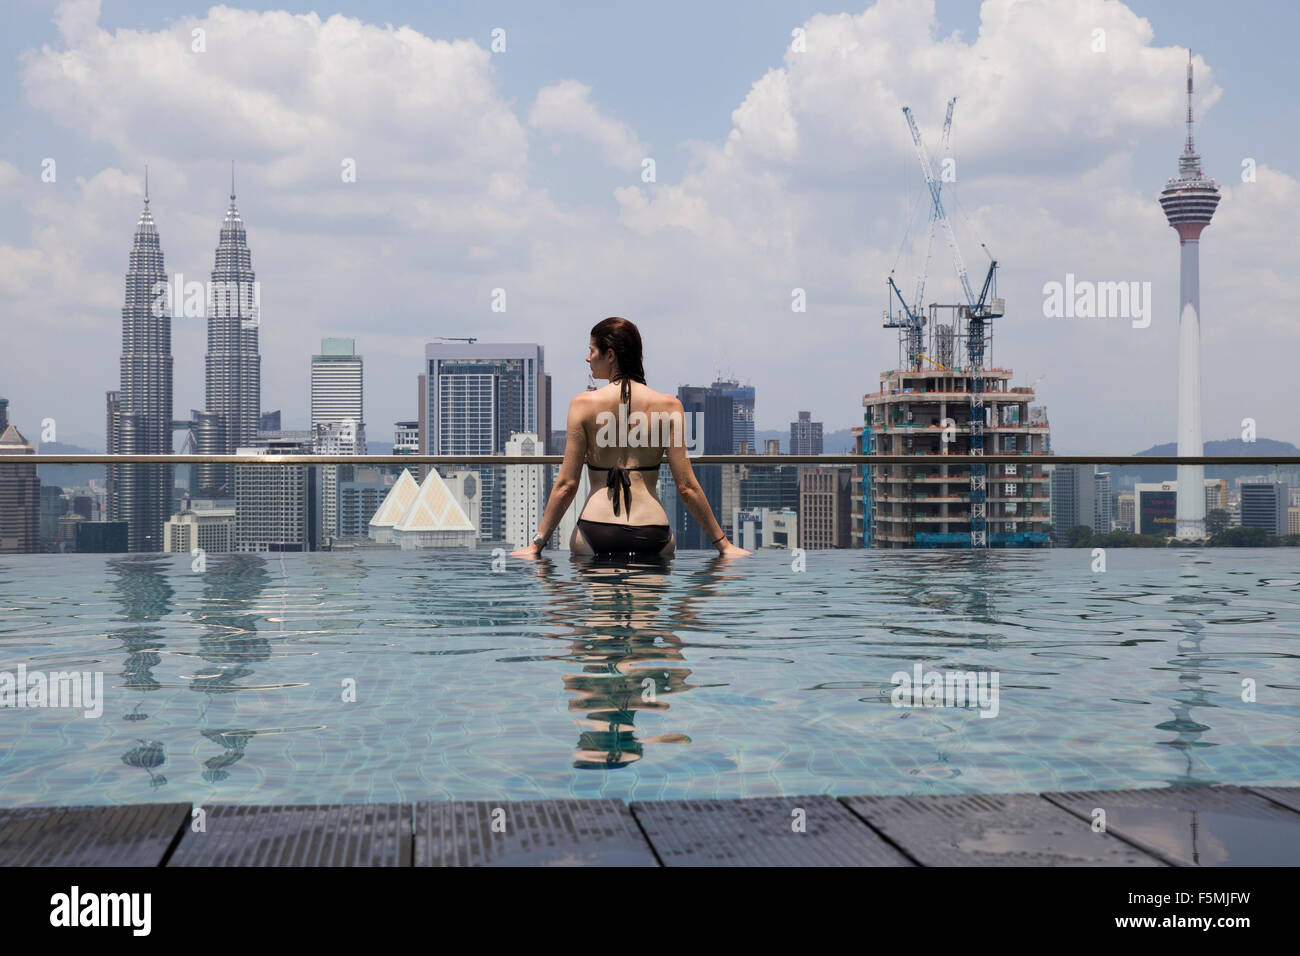 A woman in a luxury rooftop pool in kuala lumpur stock photo royalty free image 89578717 alamy for Best hotel swimming pool in kuala lumpur